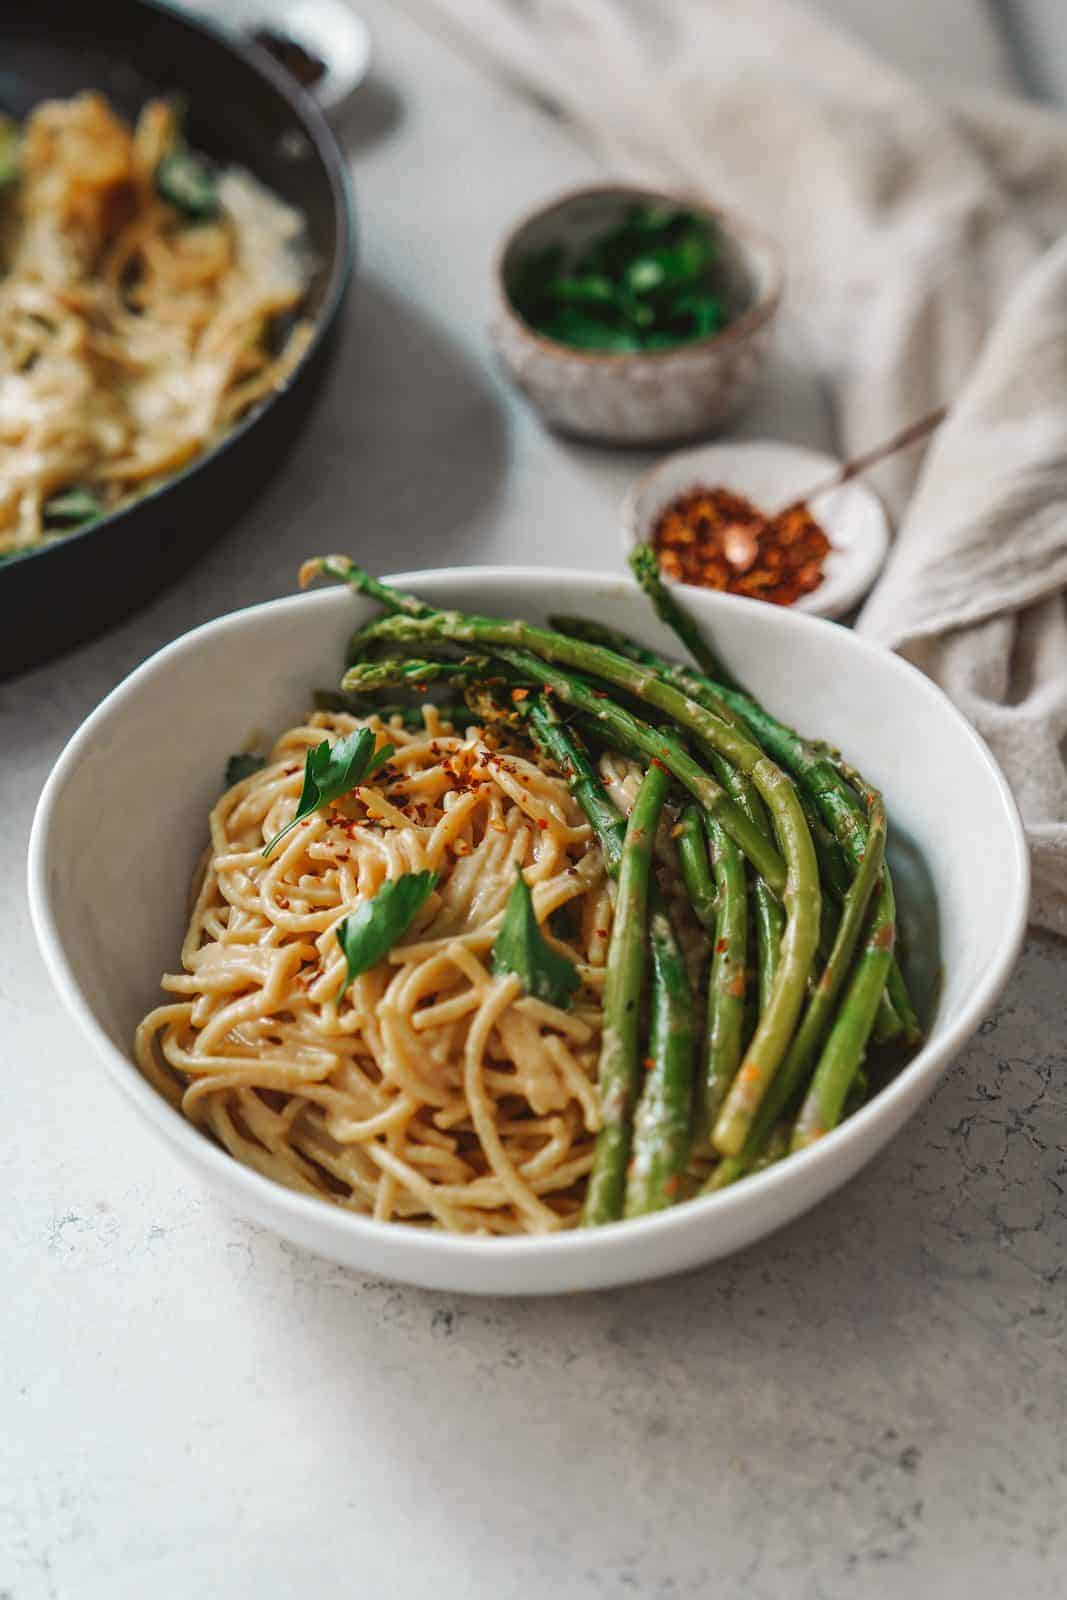 Bowl of spaghetti with vegan white wine sauce + asparagus on table.